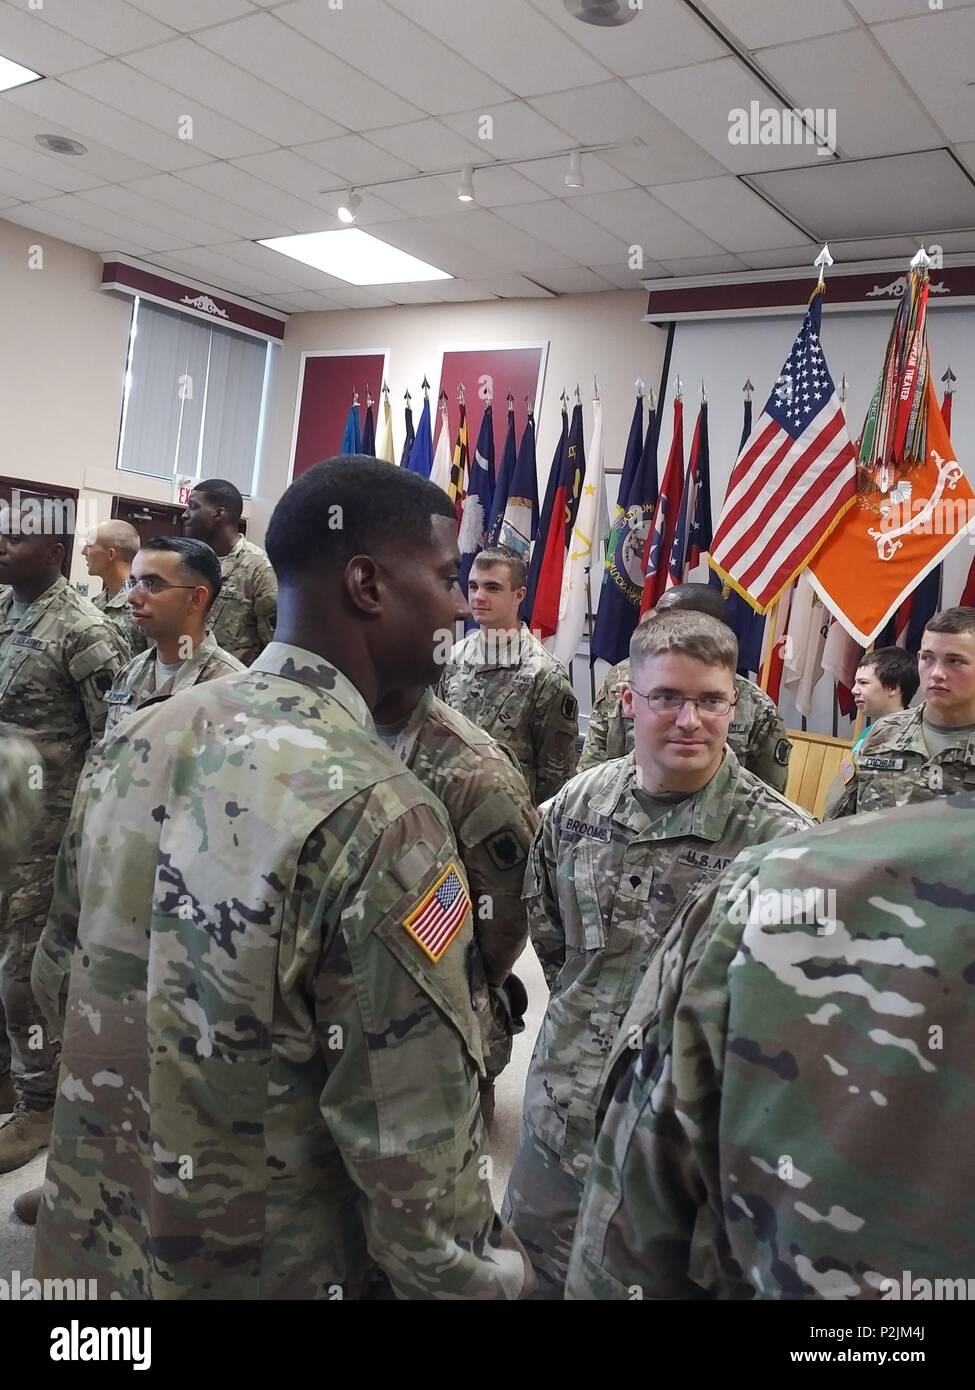 Battalion Command Sergeant Major Barrett speaks with the deploying Soldiers about his expectations and the opportunity this deployment presents. Soldiers pictured, from left to right, SPC Sinclair, SPC Ambrocio, SPC Broome, SGT Brady, SPC Gittens, SPC Hinz, PFC Cochran - Stock Image